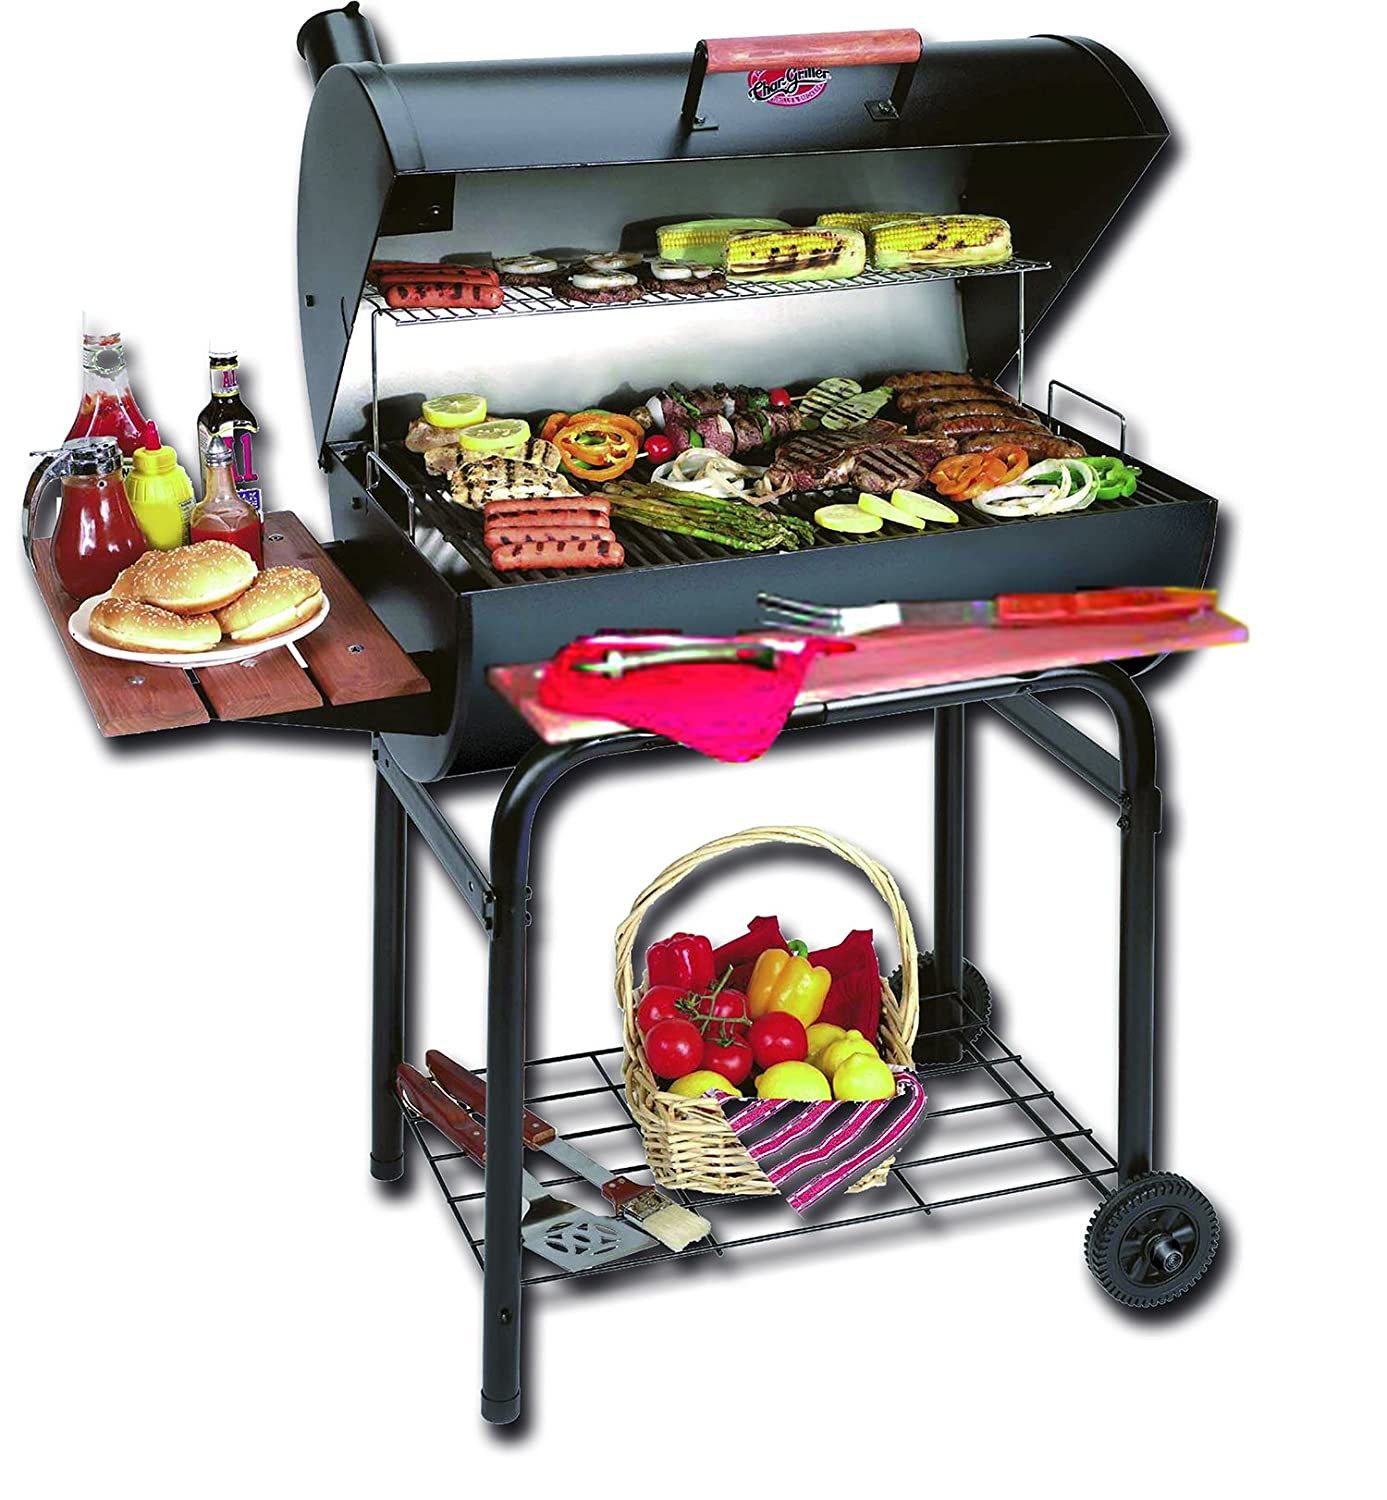 amazon com char griller 2121 super pro charcoal grill and smoker